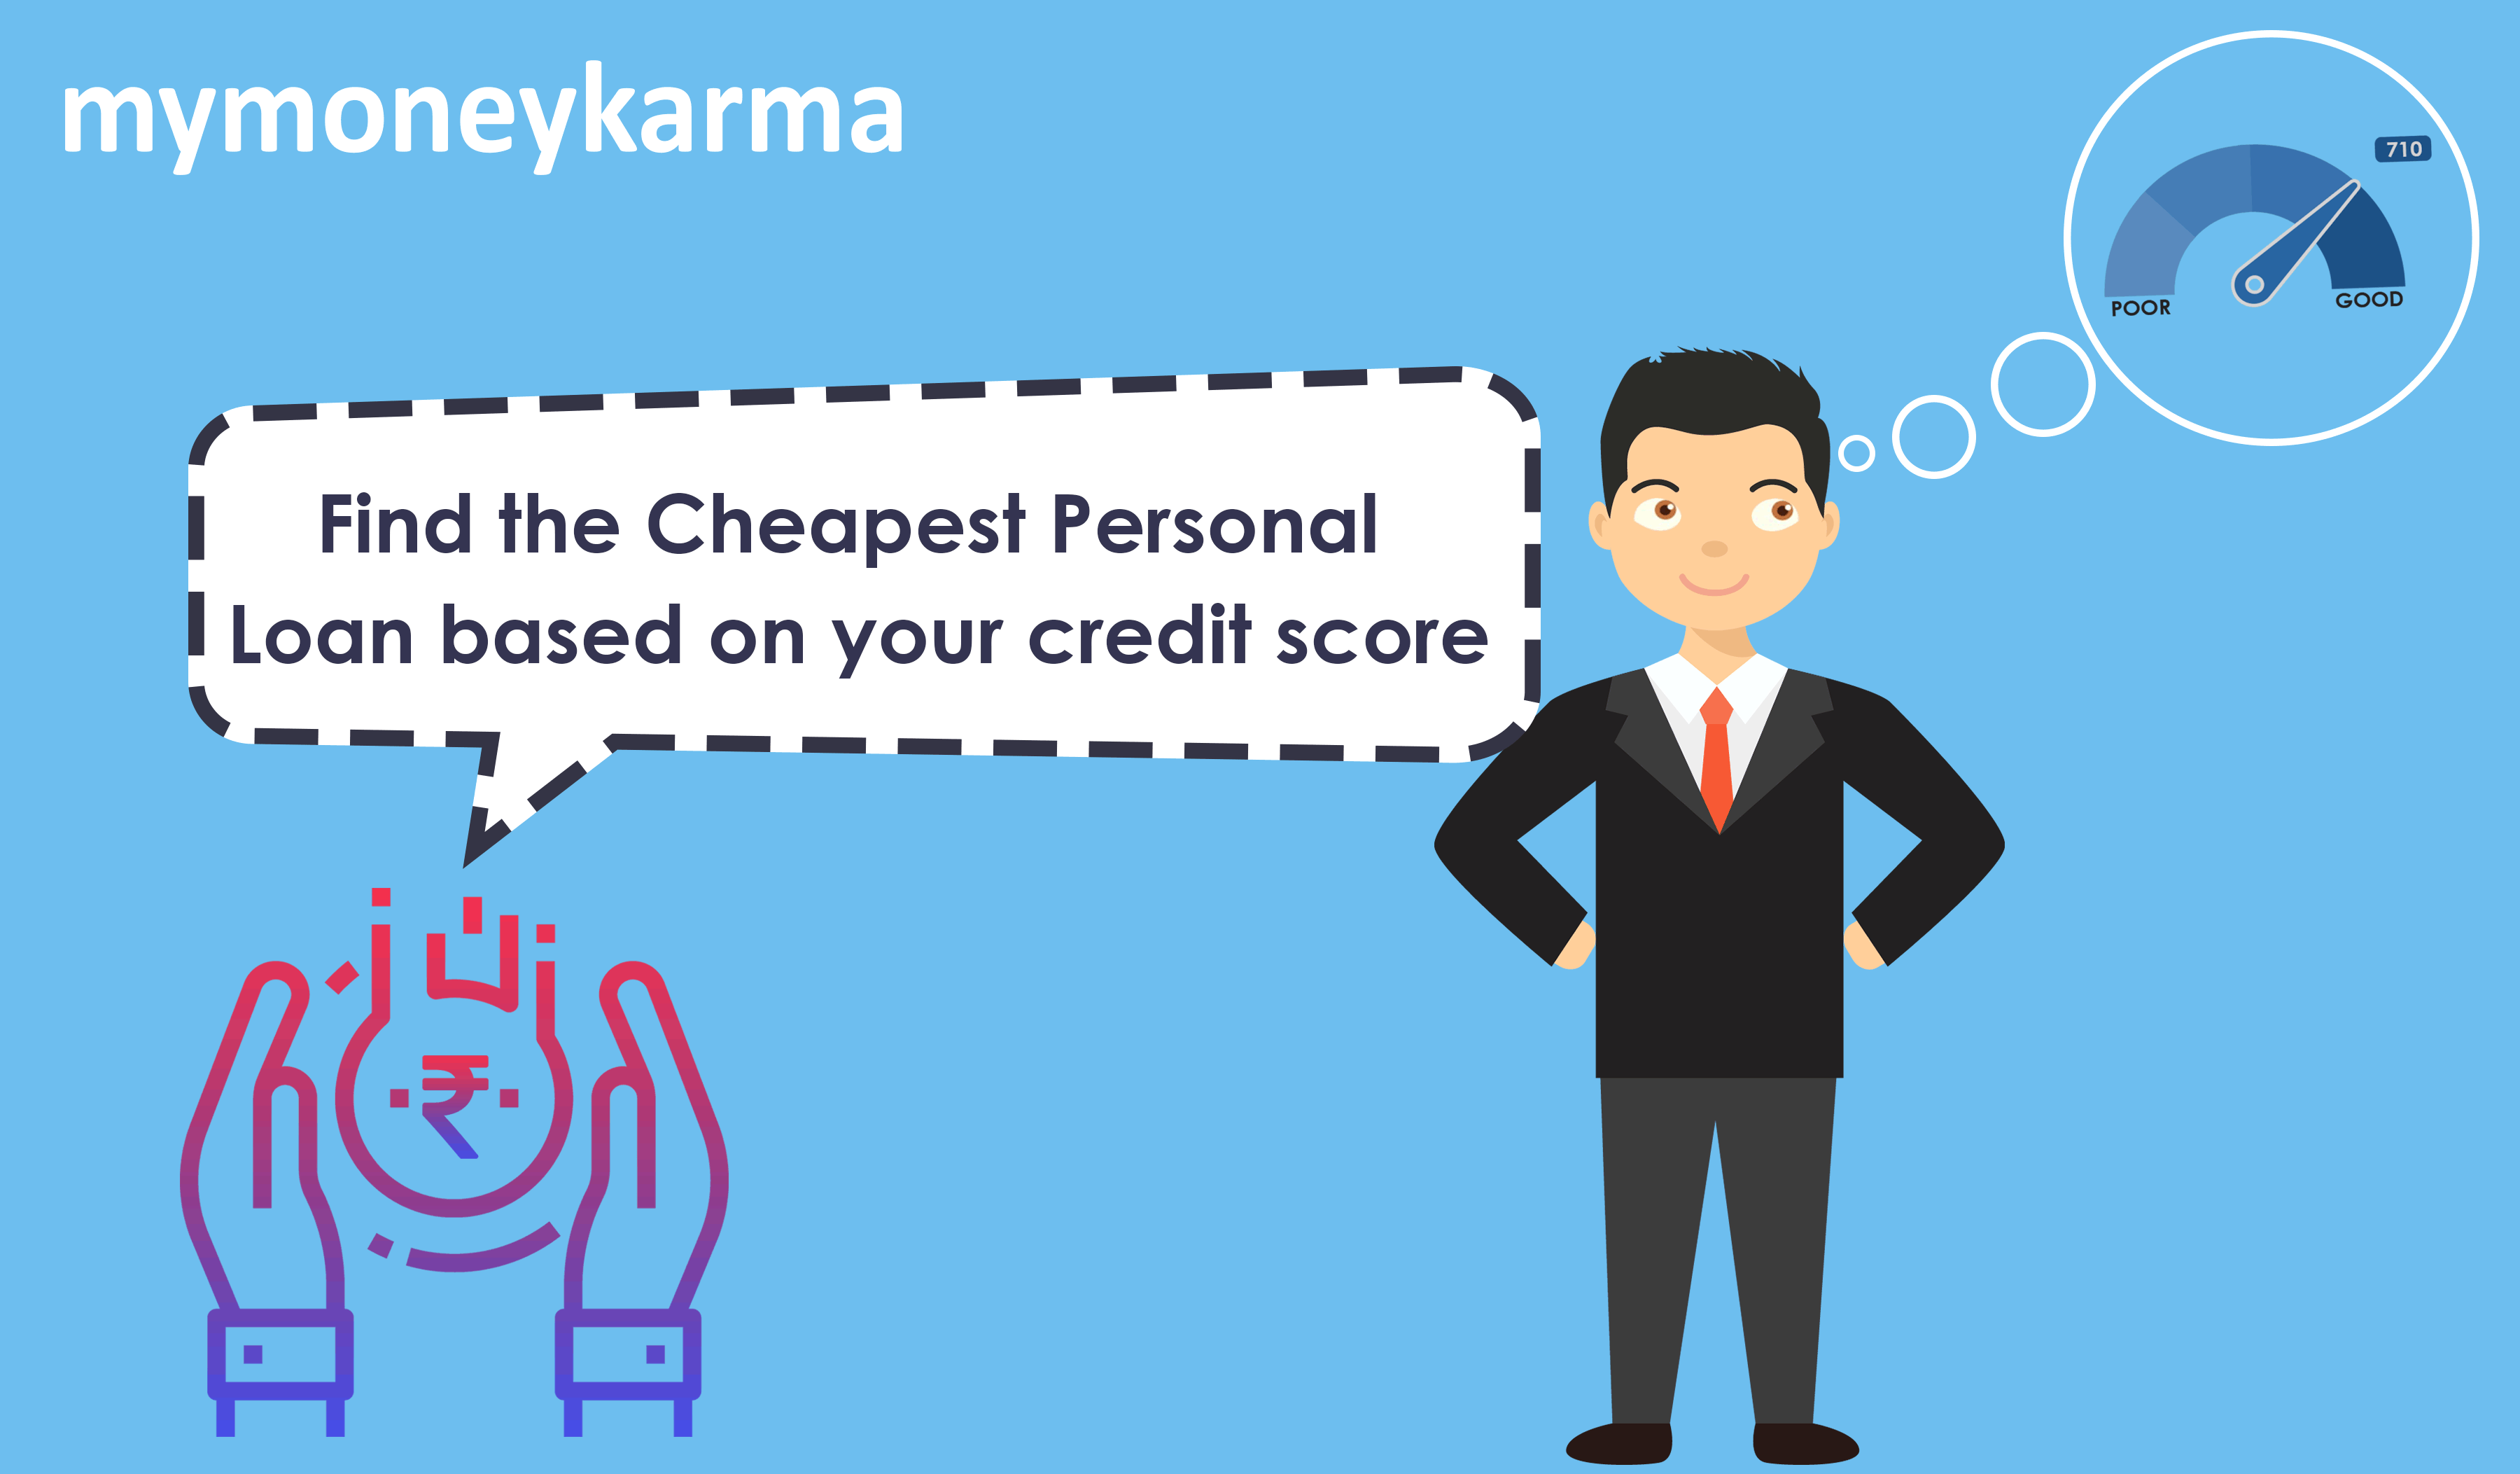 Find the Cheapest Personal Loan based on your credit score